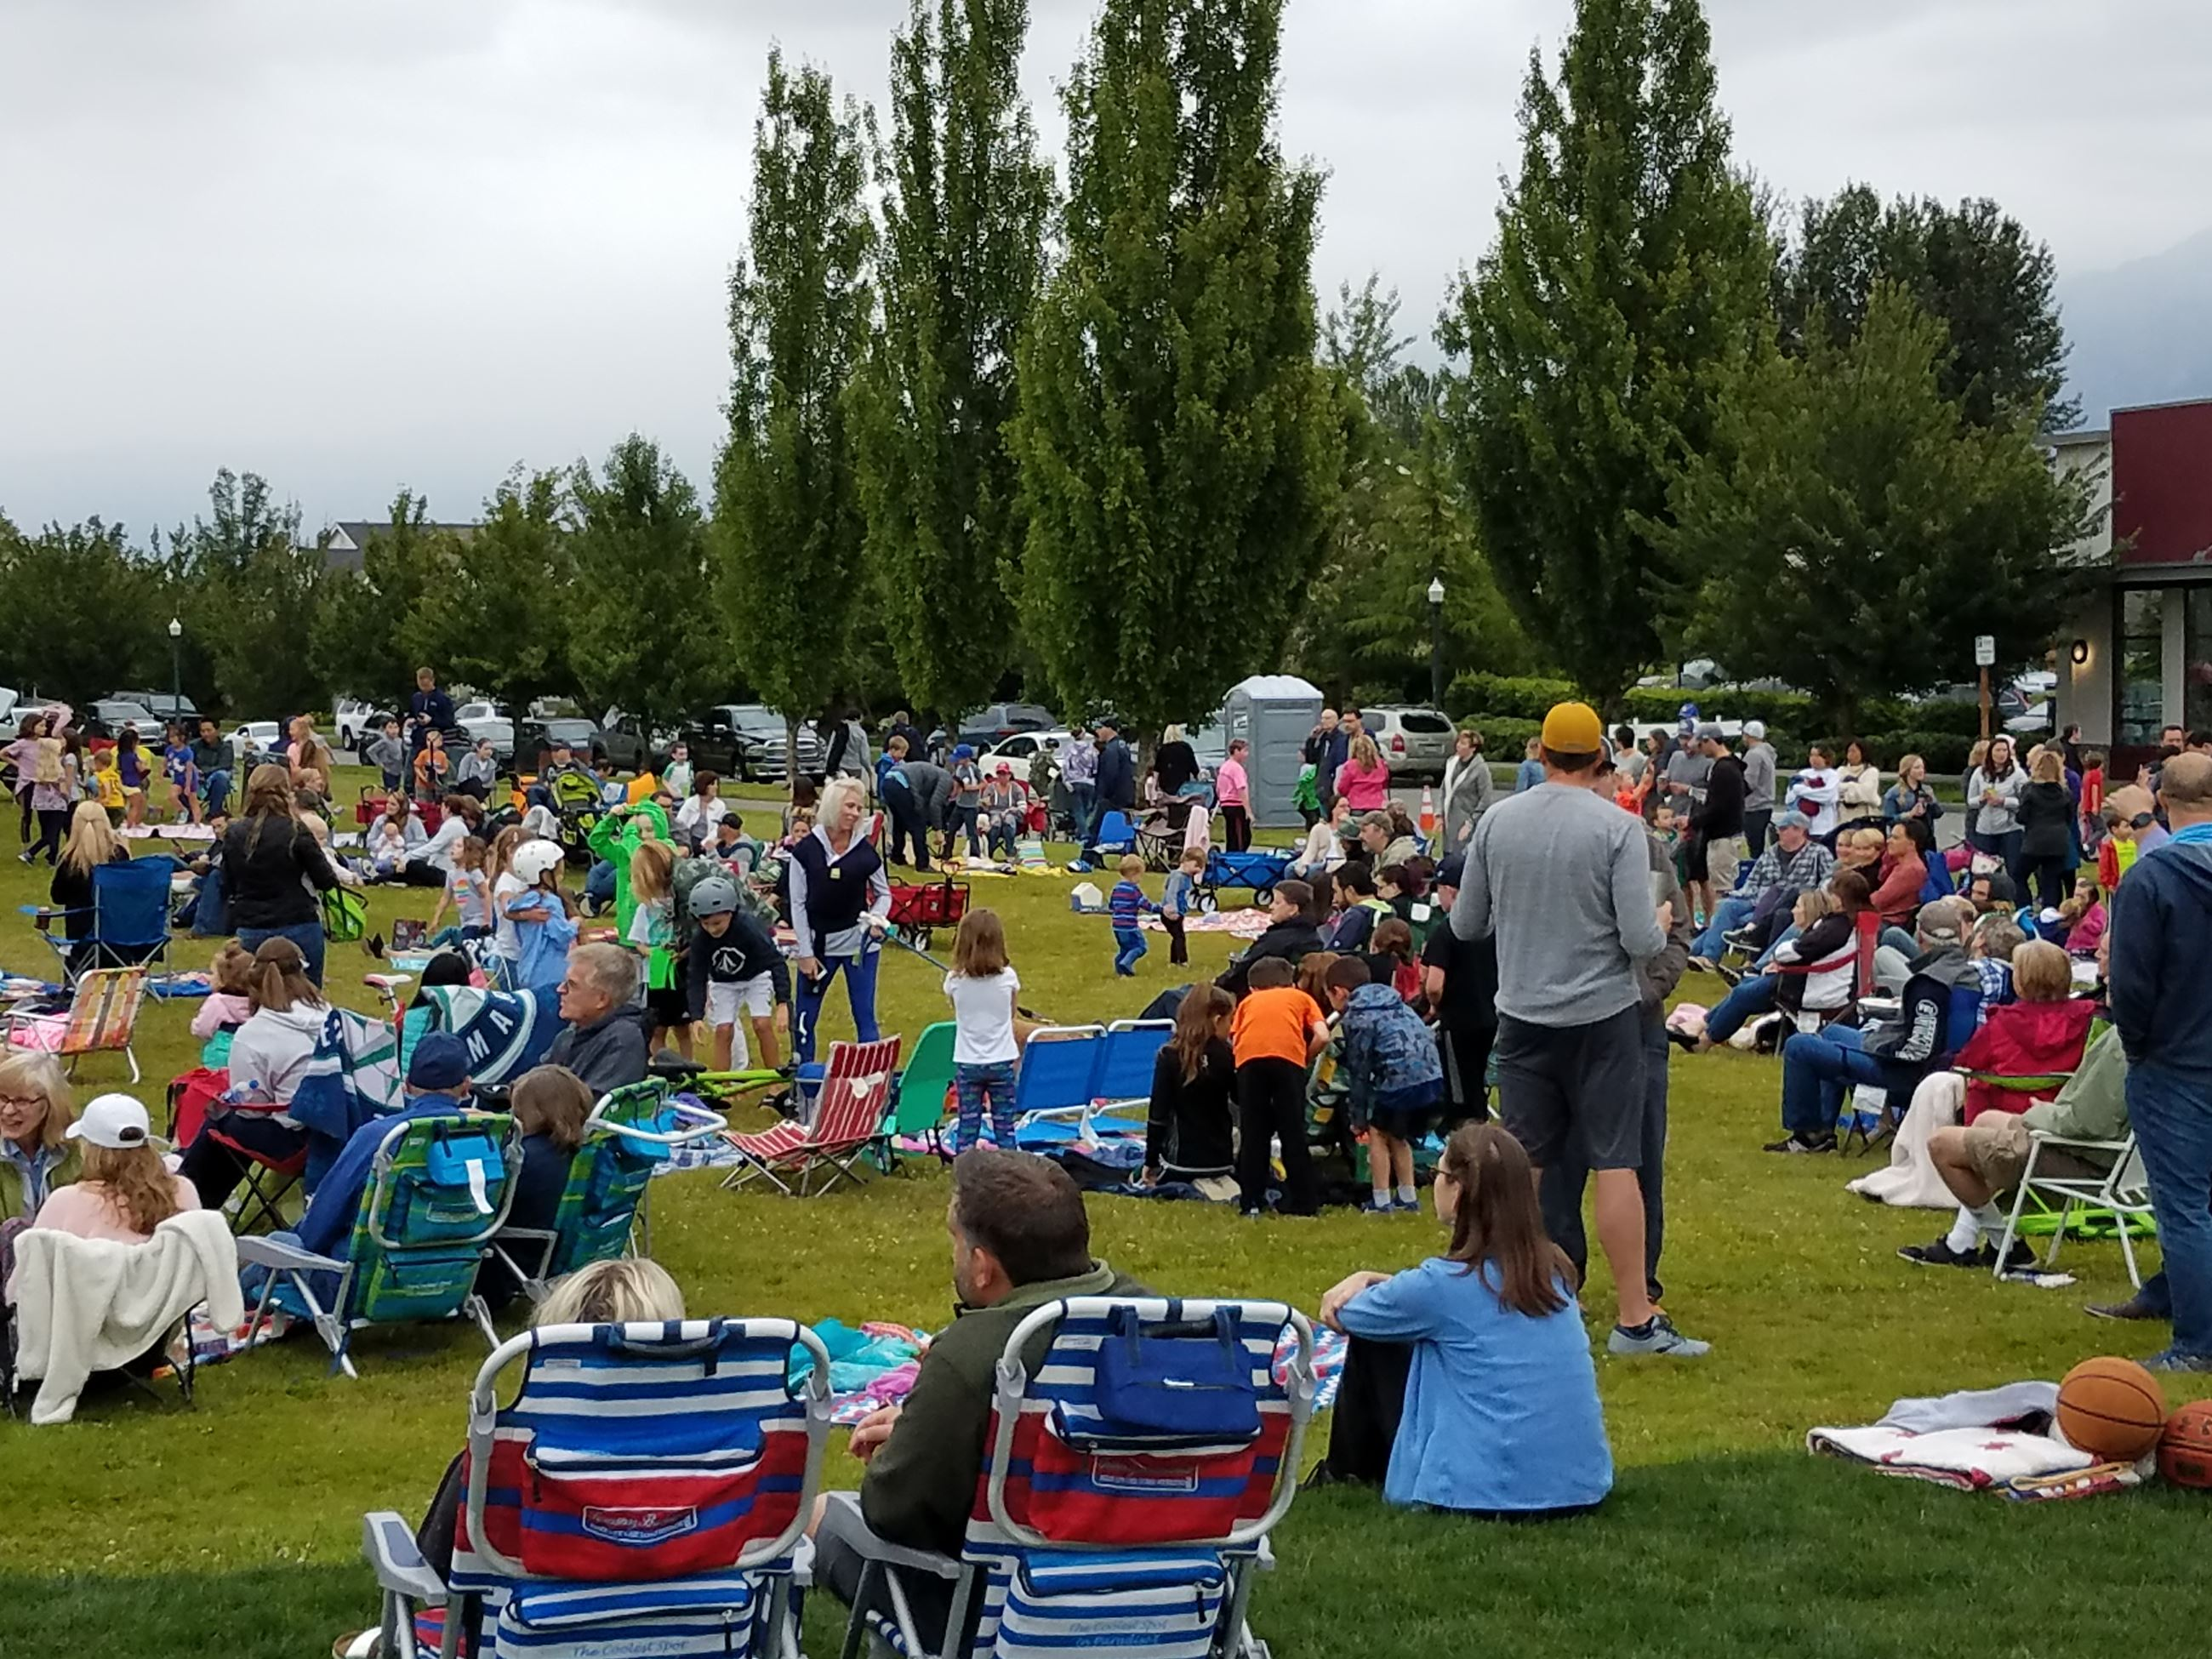 This is a picture of the audience enjoying live music at Snoqualmie Community Park.